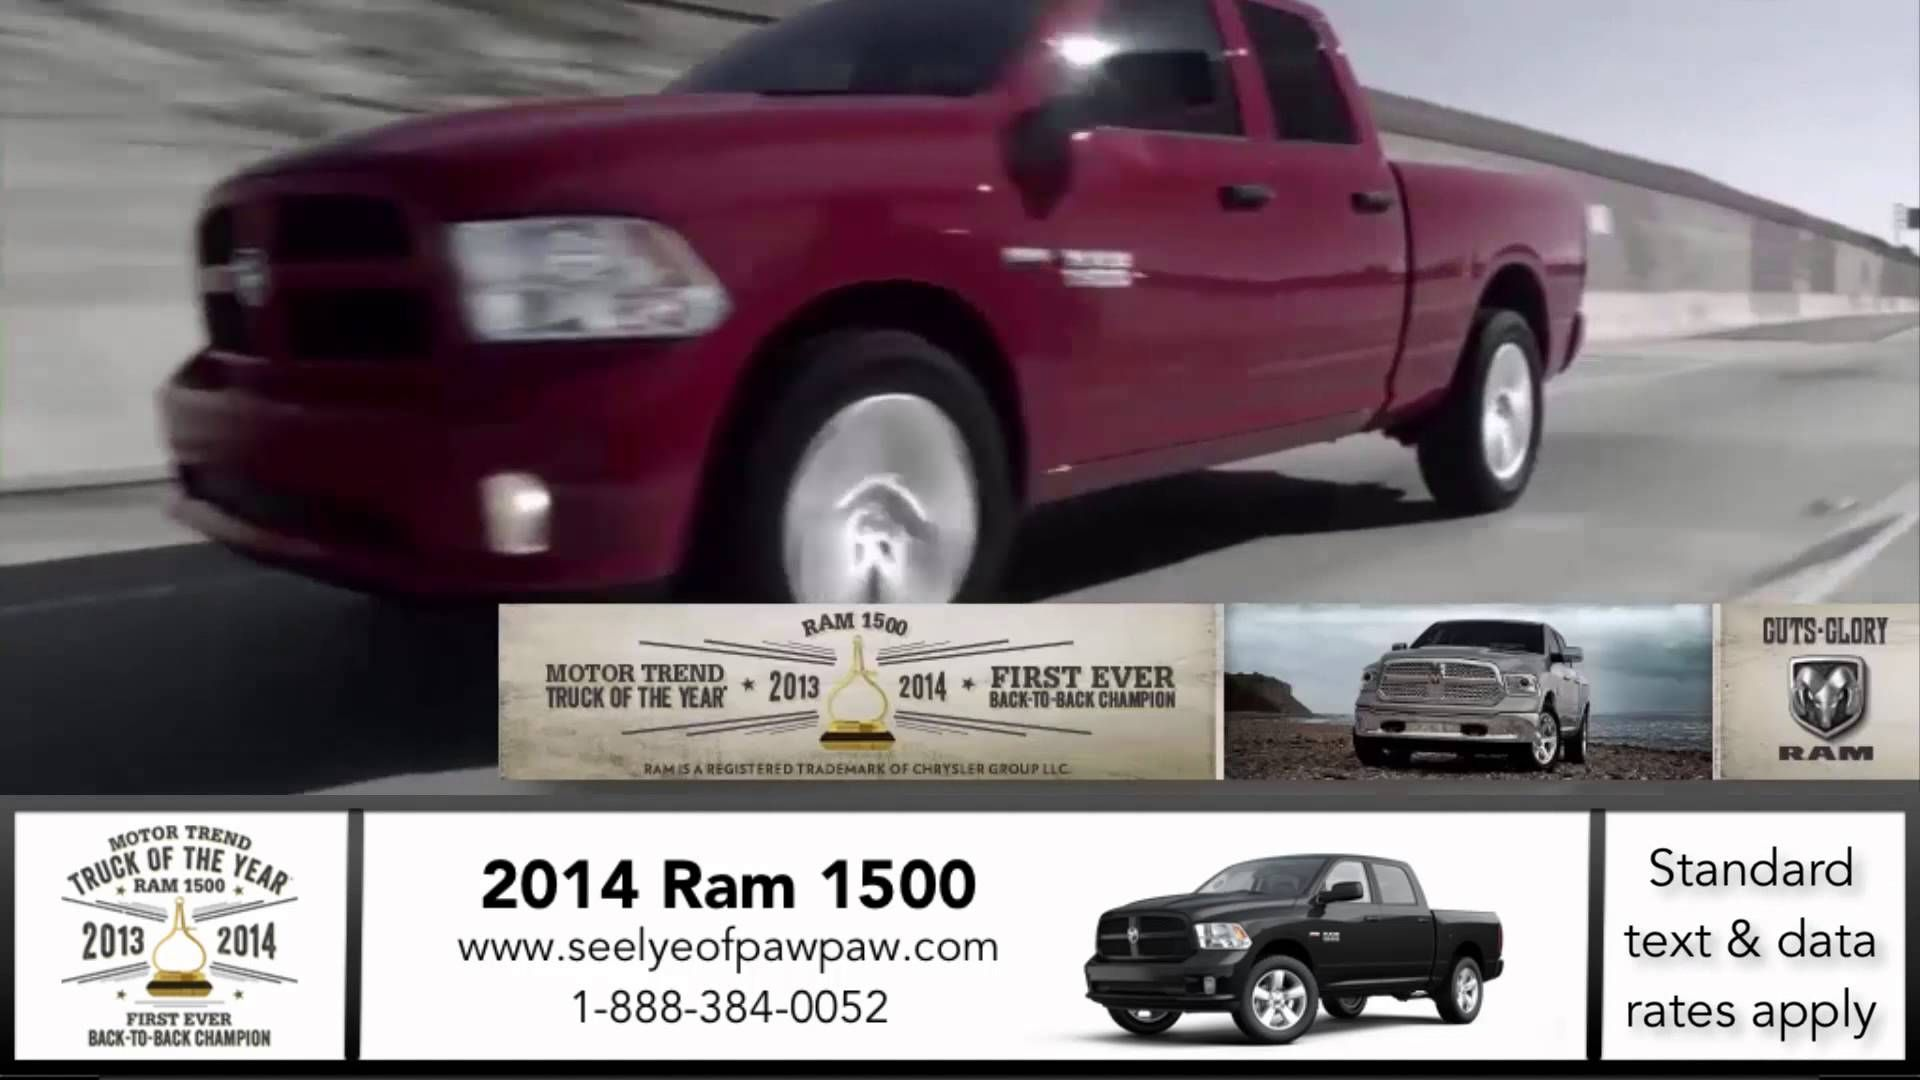 2014 Ram in Plainwell MI Motortrend Truck of the Year back to back two years in a row! http://seelyeofpawpaw.com